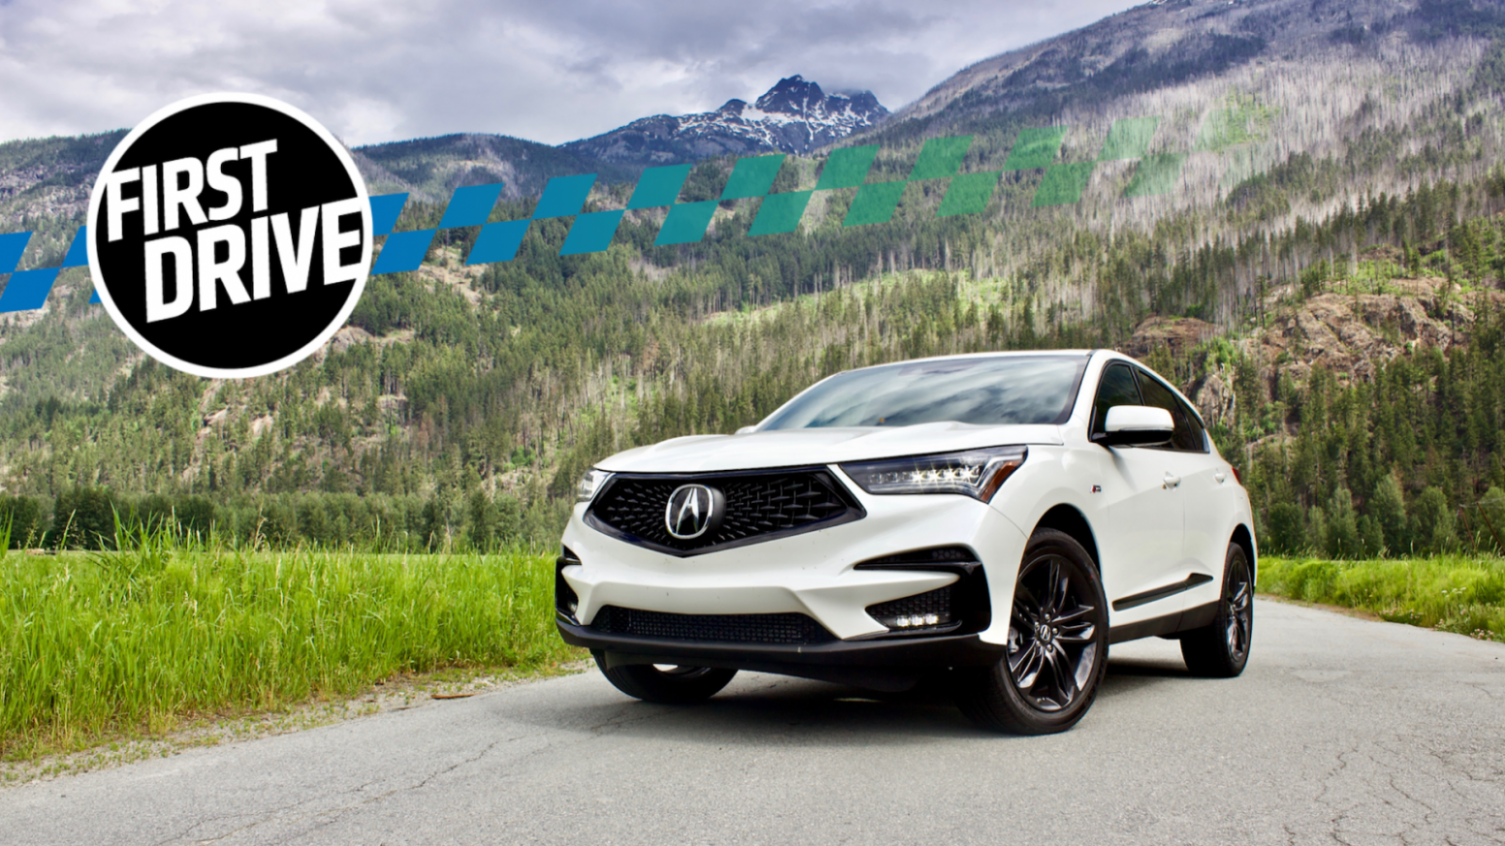 Five 6 Acura Rdx Jump Start Design Tips You Need To Learn Now ...